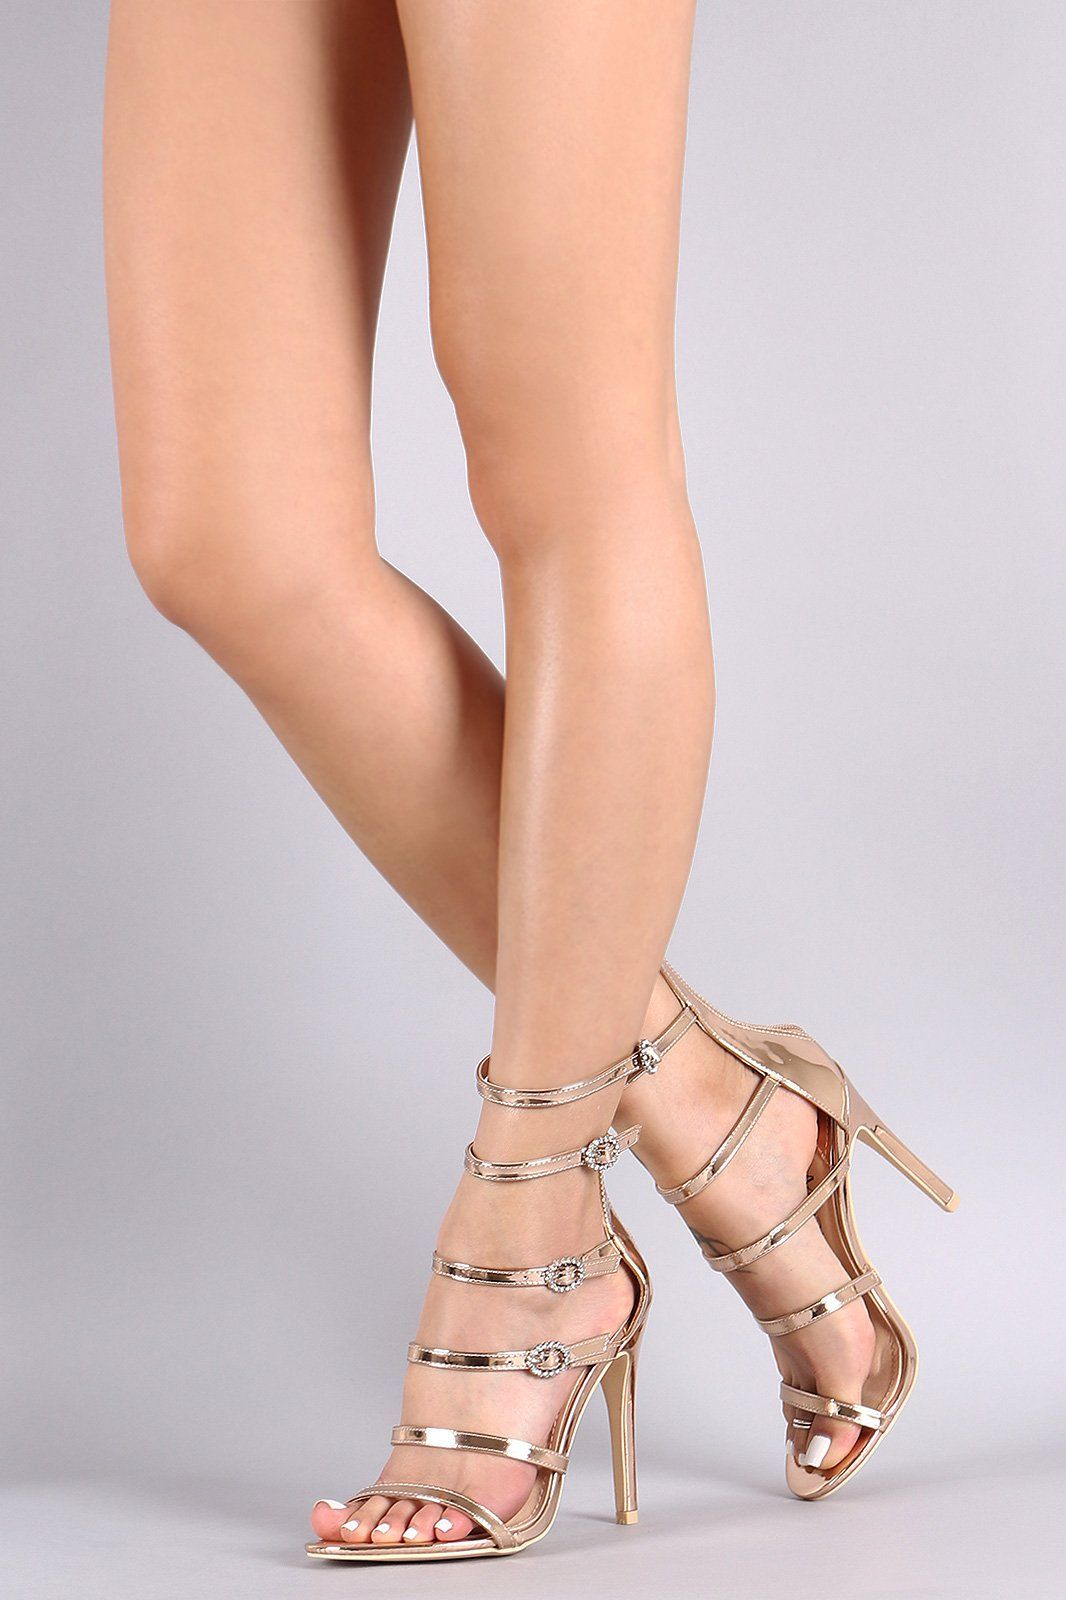 68aedeec174 This dress heel features a multiple laddered straps with adjustable buckles  accent